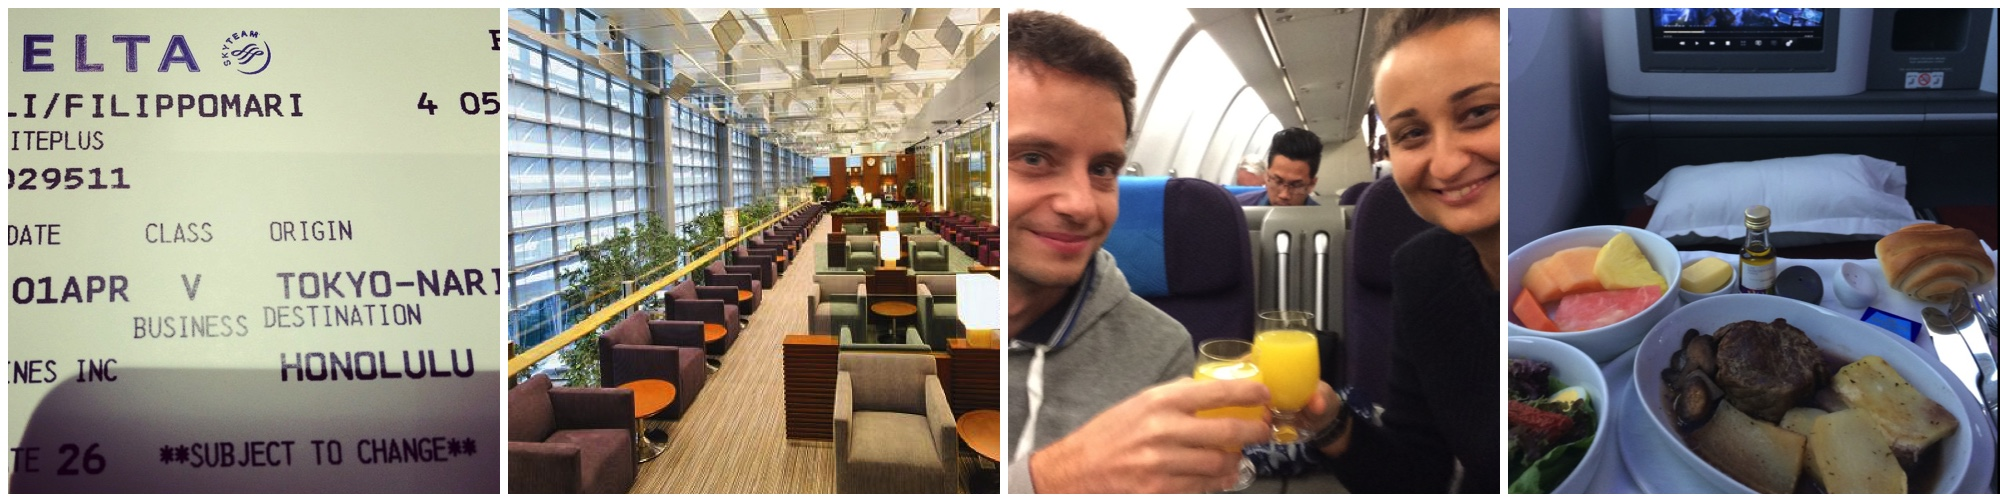 businessclass